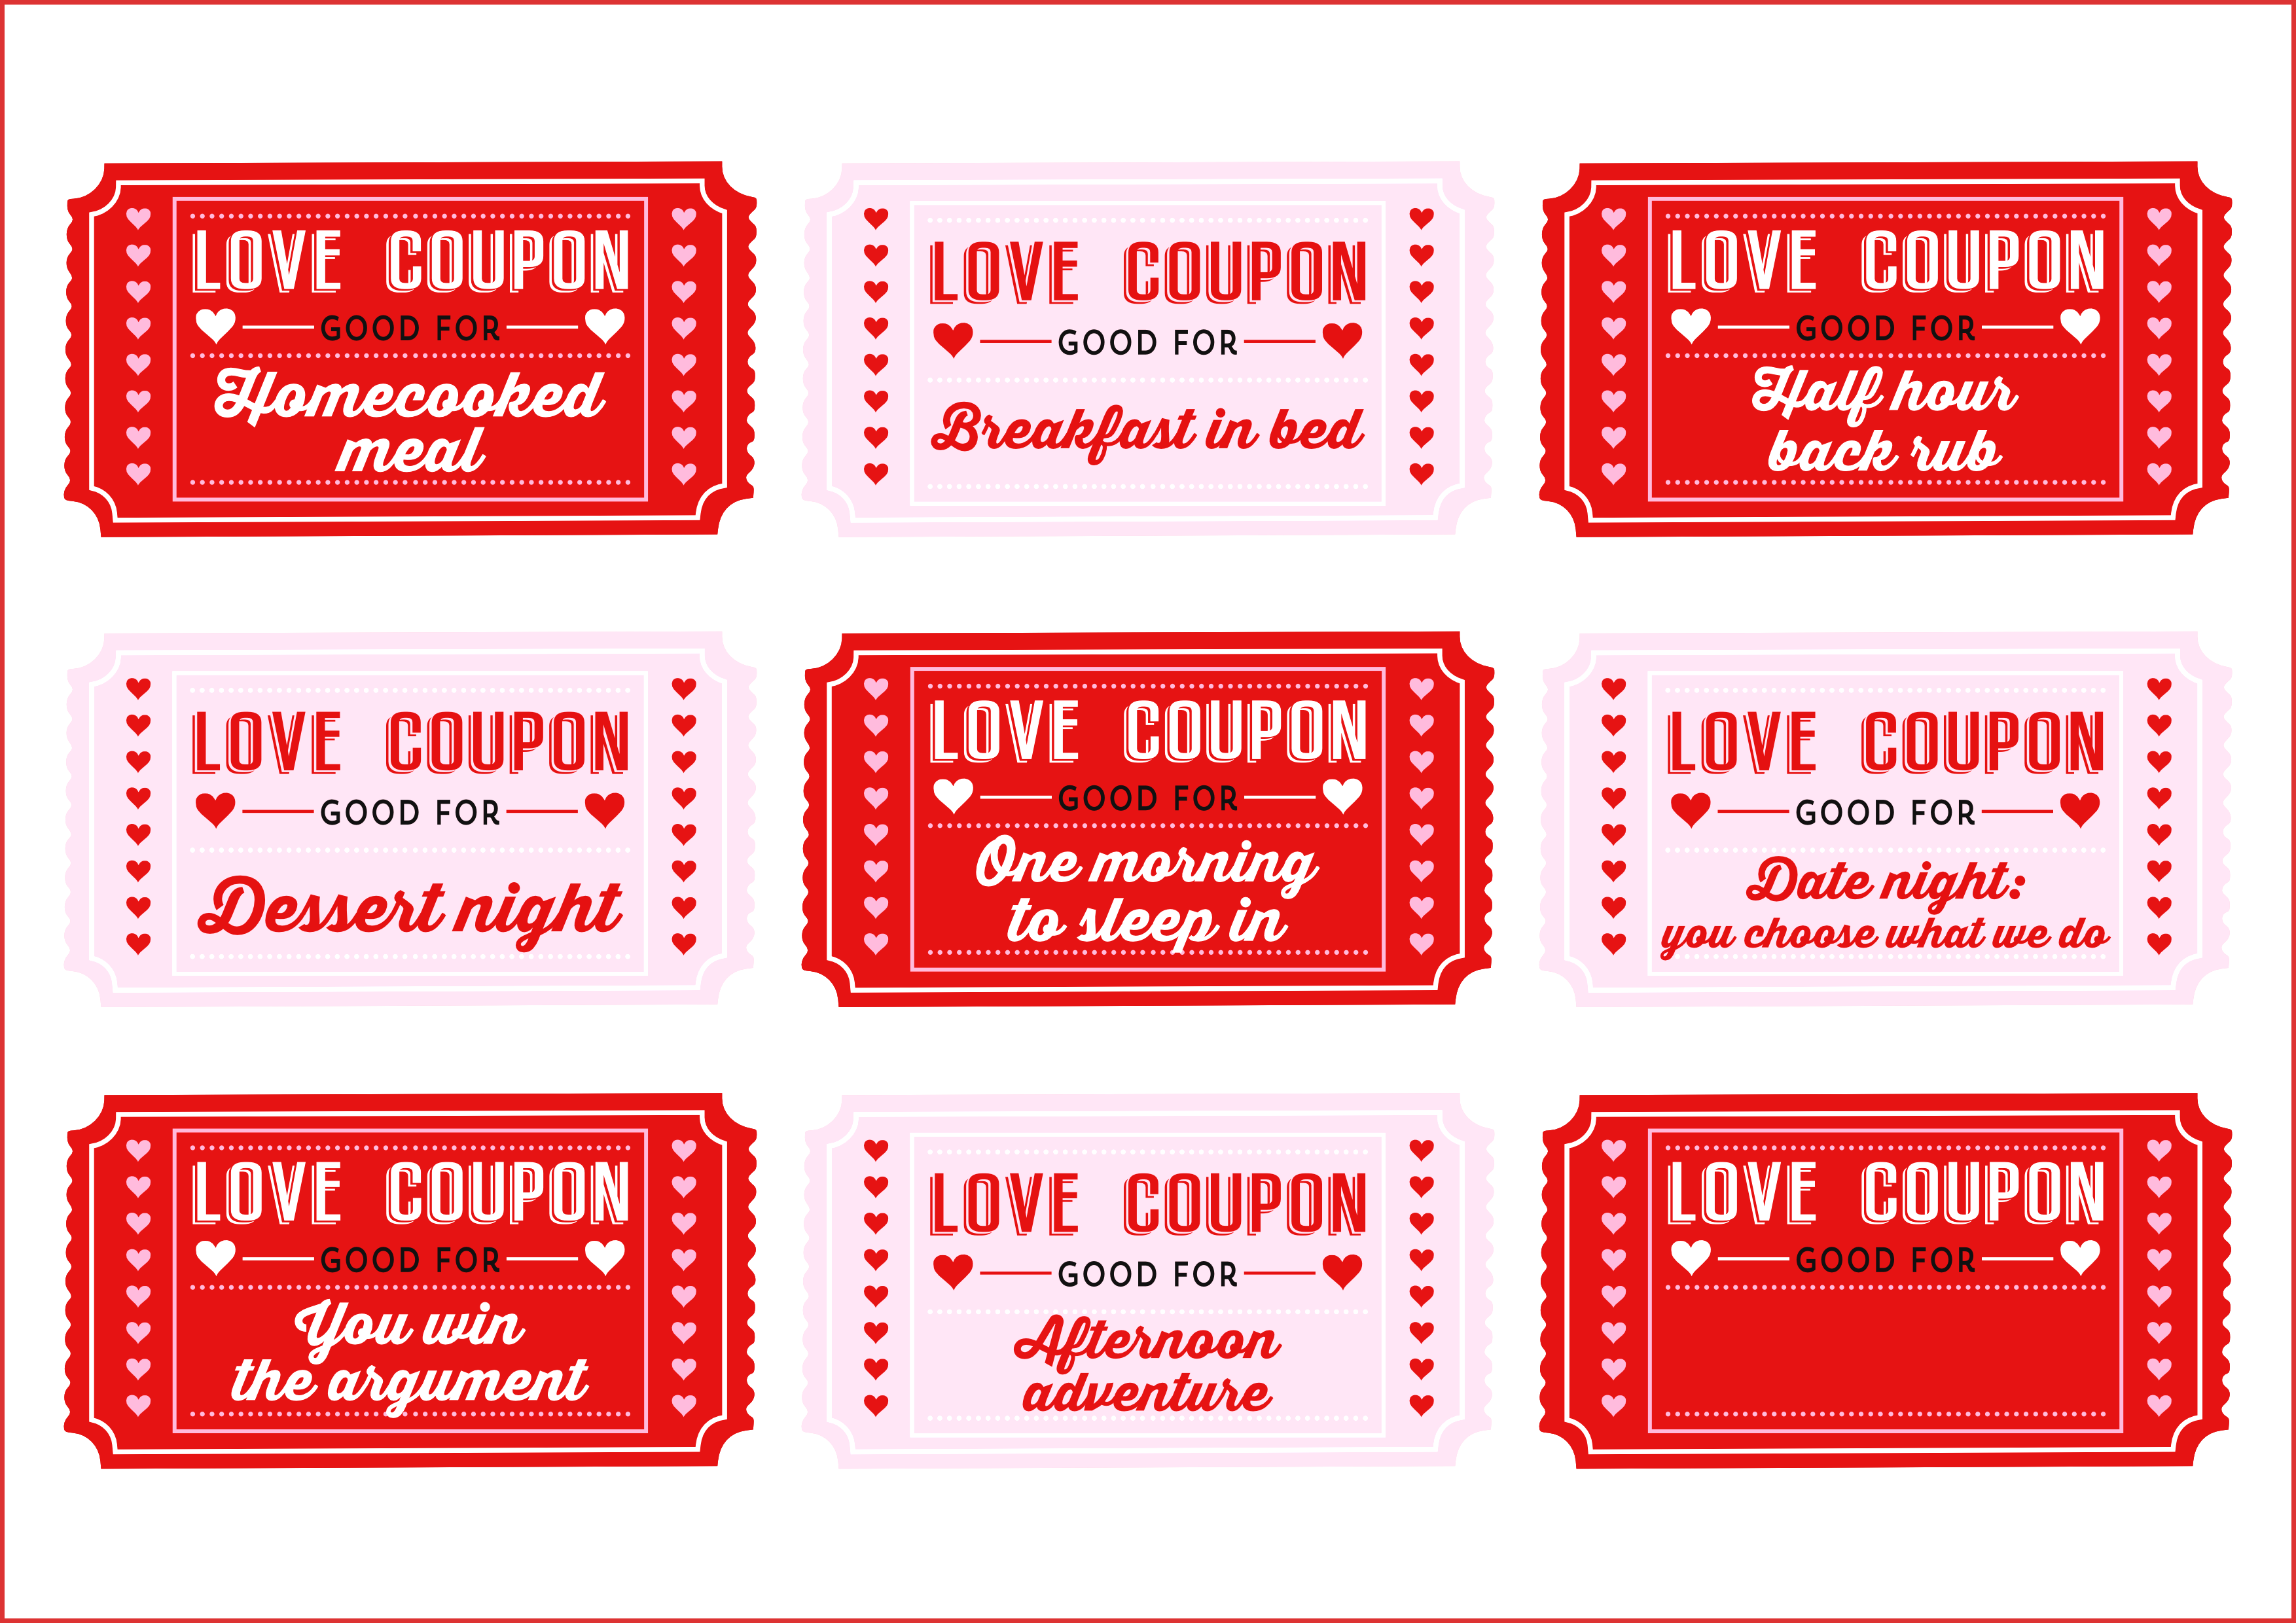 Coupon book clipart clipart free library Awesome Love Coupon Template | cobble usa clipart free library